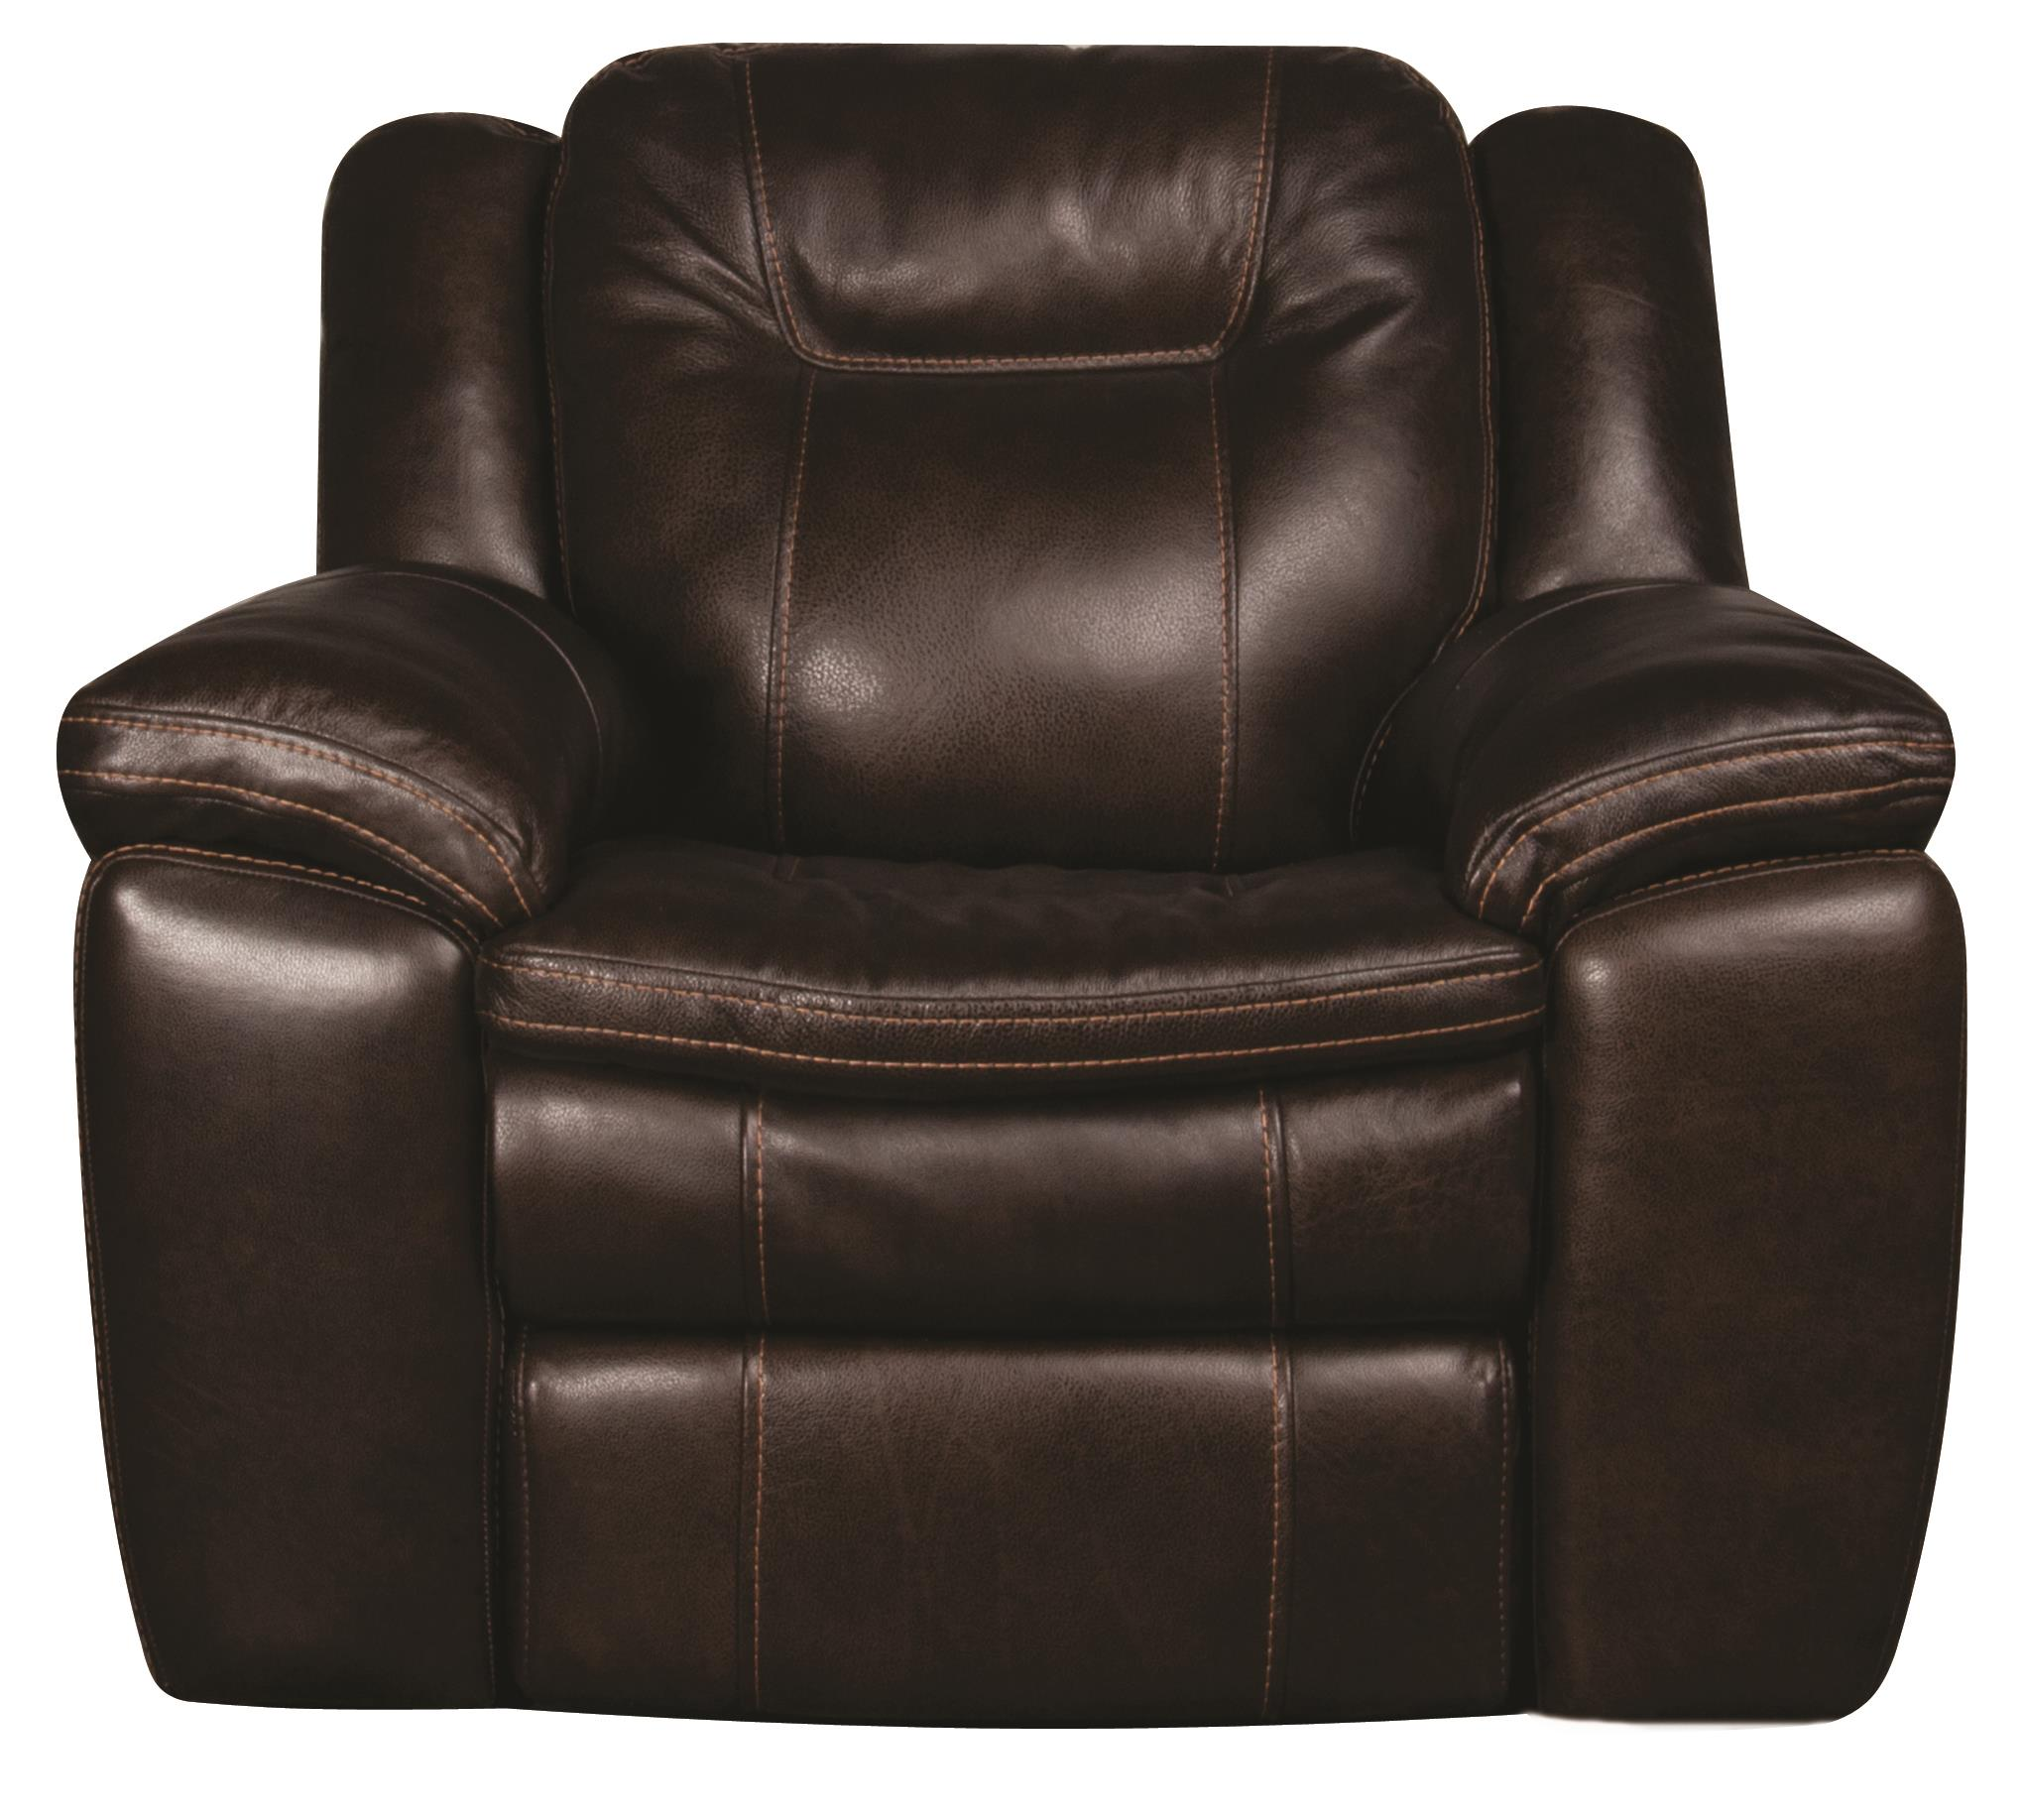 Morris Home Furnishings Heath Heath Power Leather-Match* Recliner - Item Number: 773818847